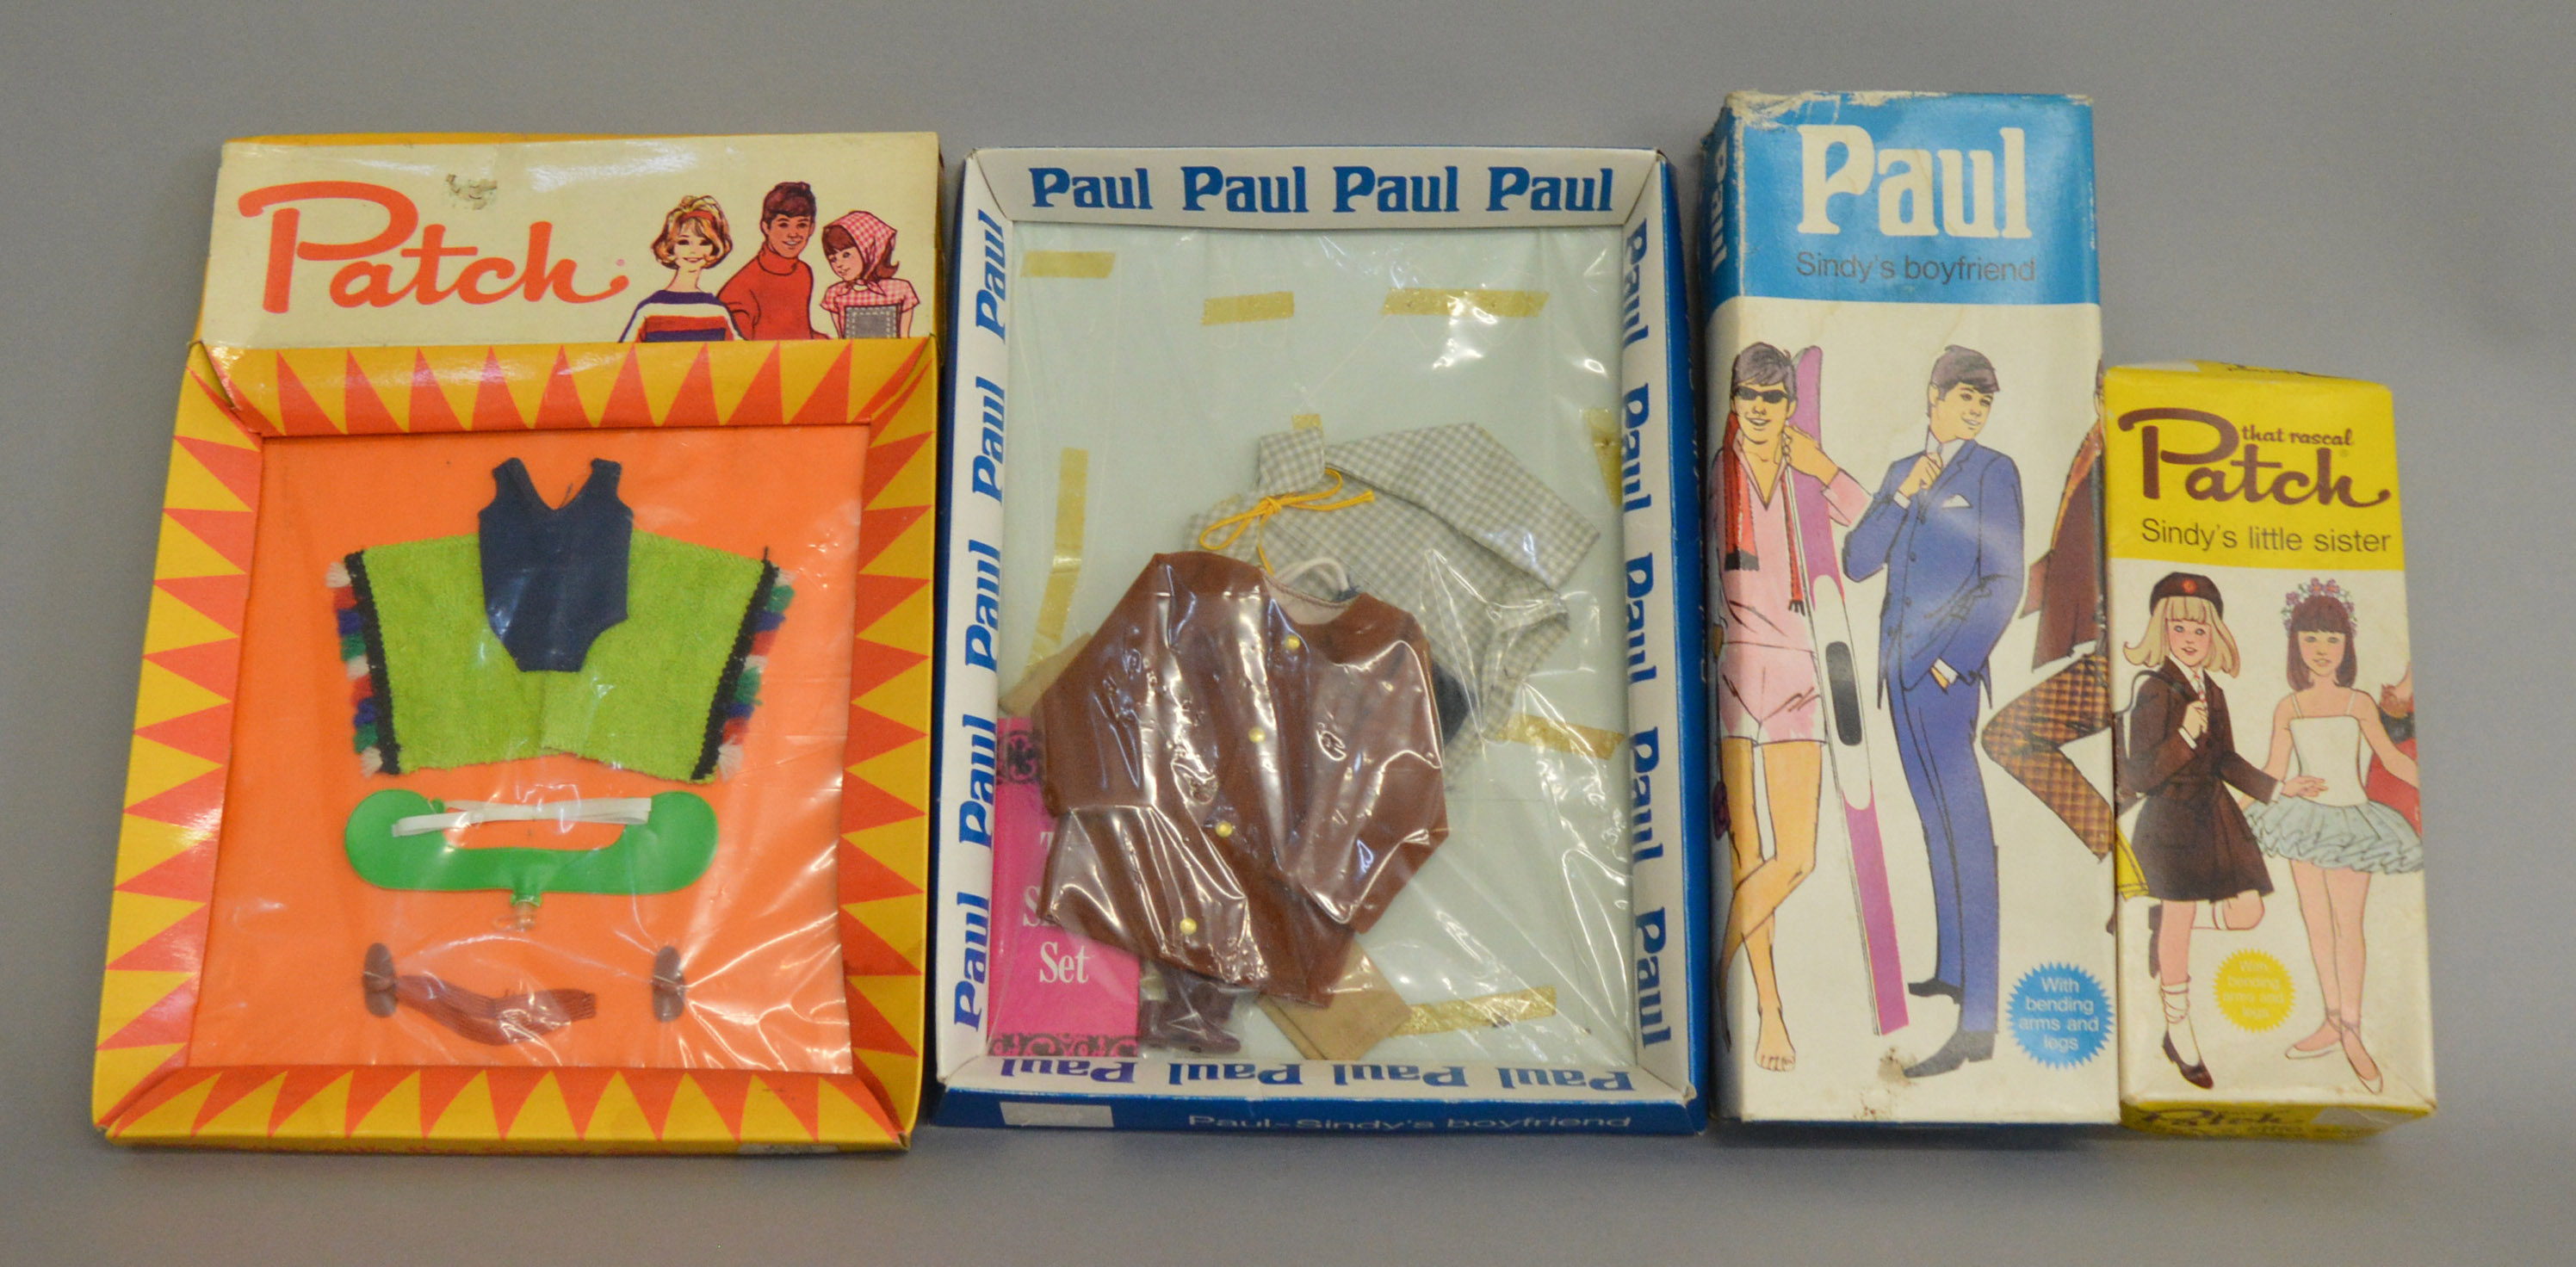 Lot 30 - EX-SHOP STOCK: Paul doll in original box along with Paul outfit set and Patch outfit set,